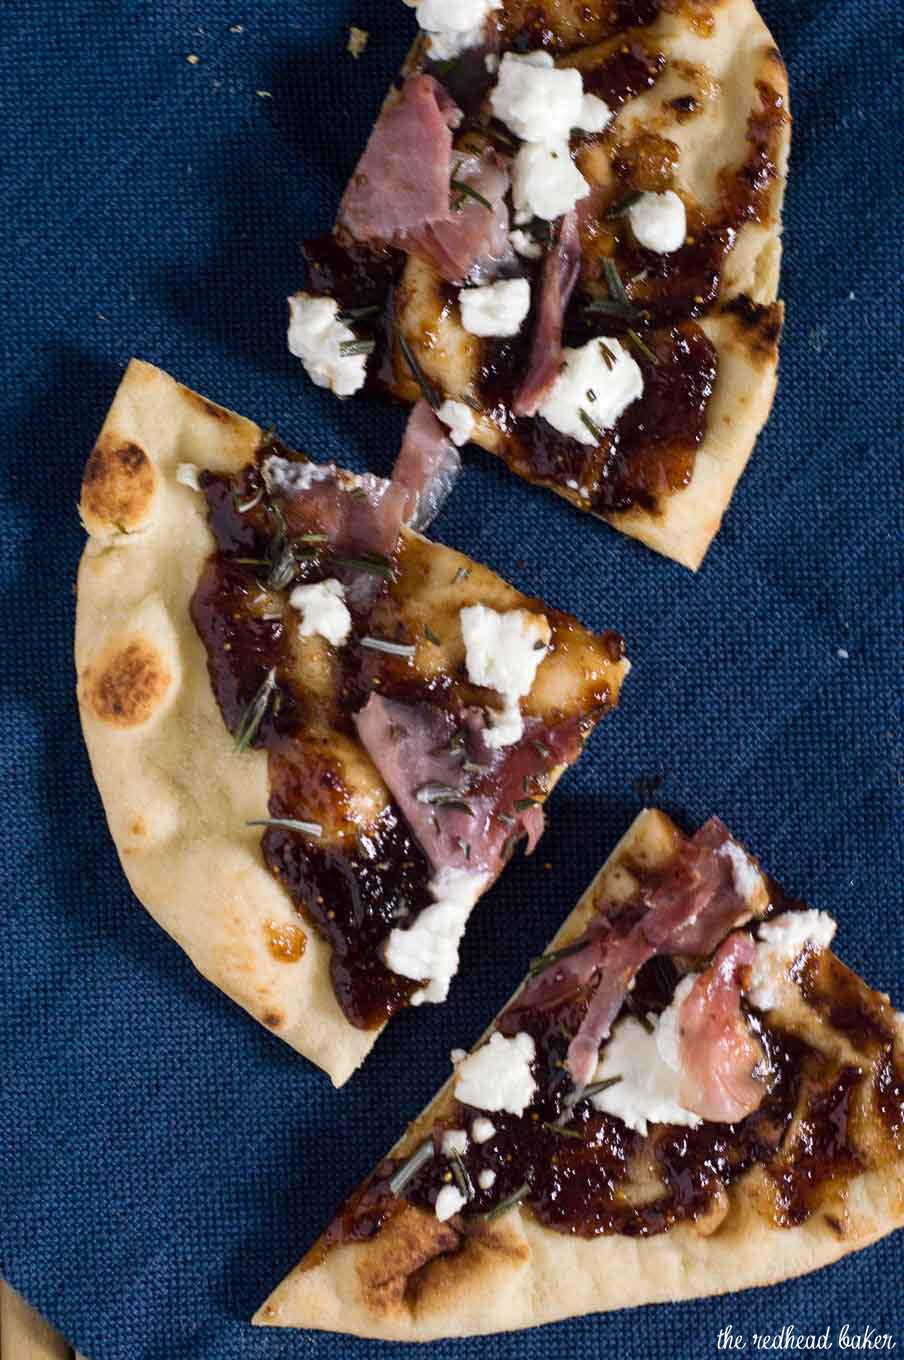 Indian flatbread makes a great crust for pizza! This na'an pizza is topped with fig jam, tangy goat cheese and salty prosciutto.